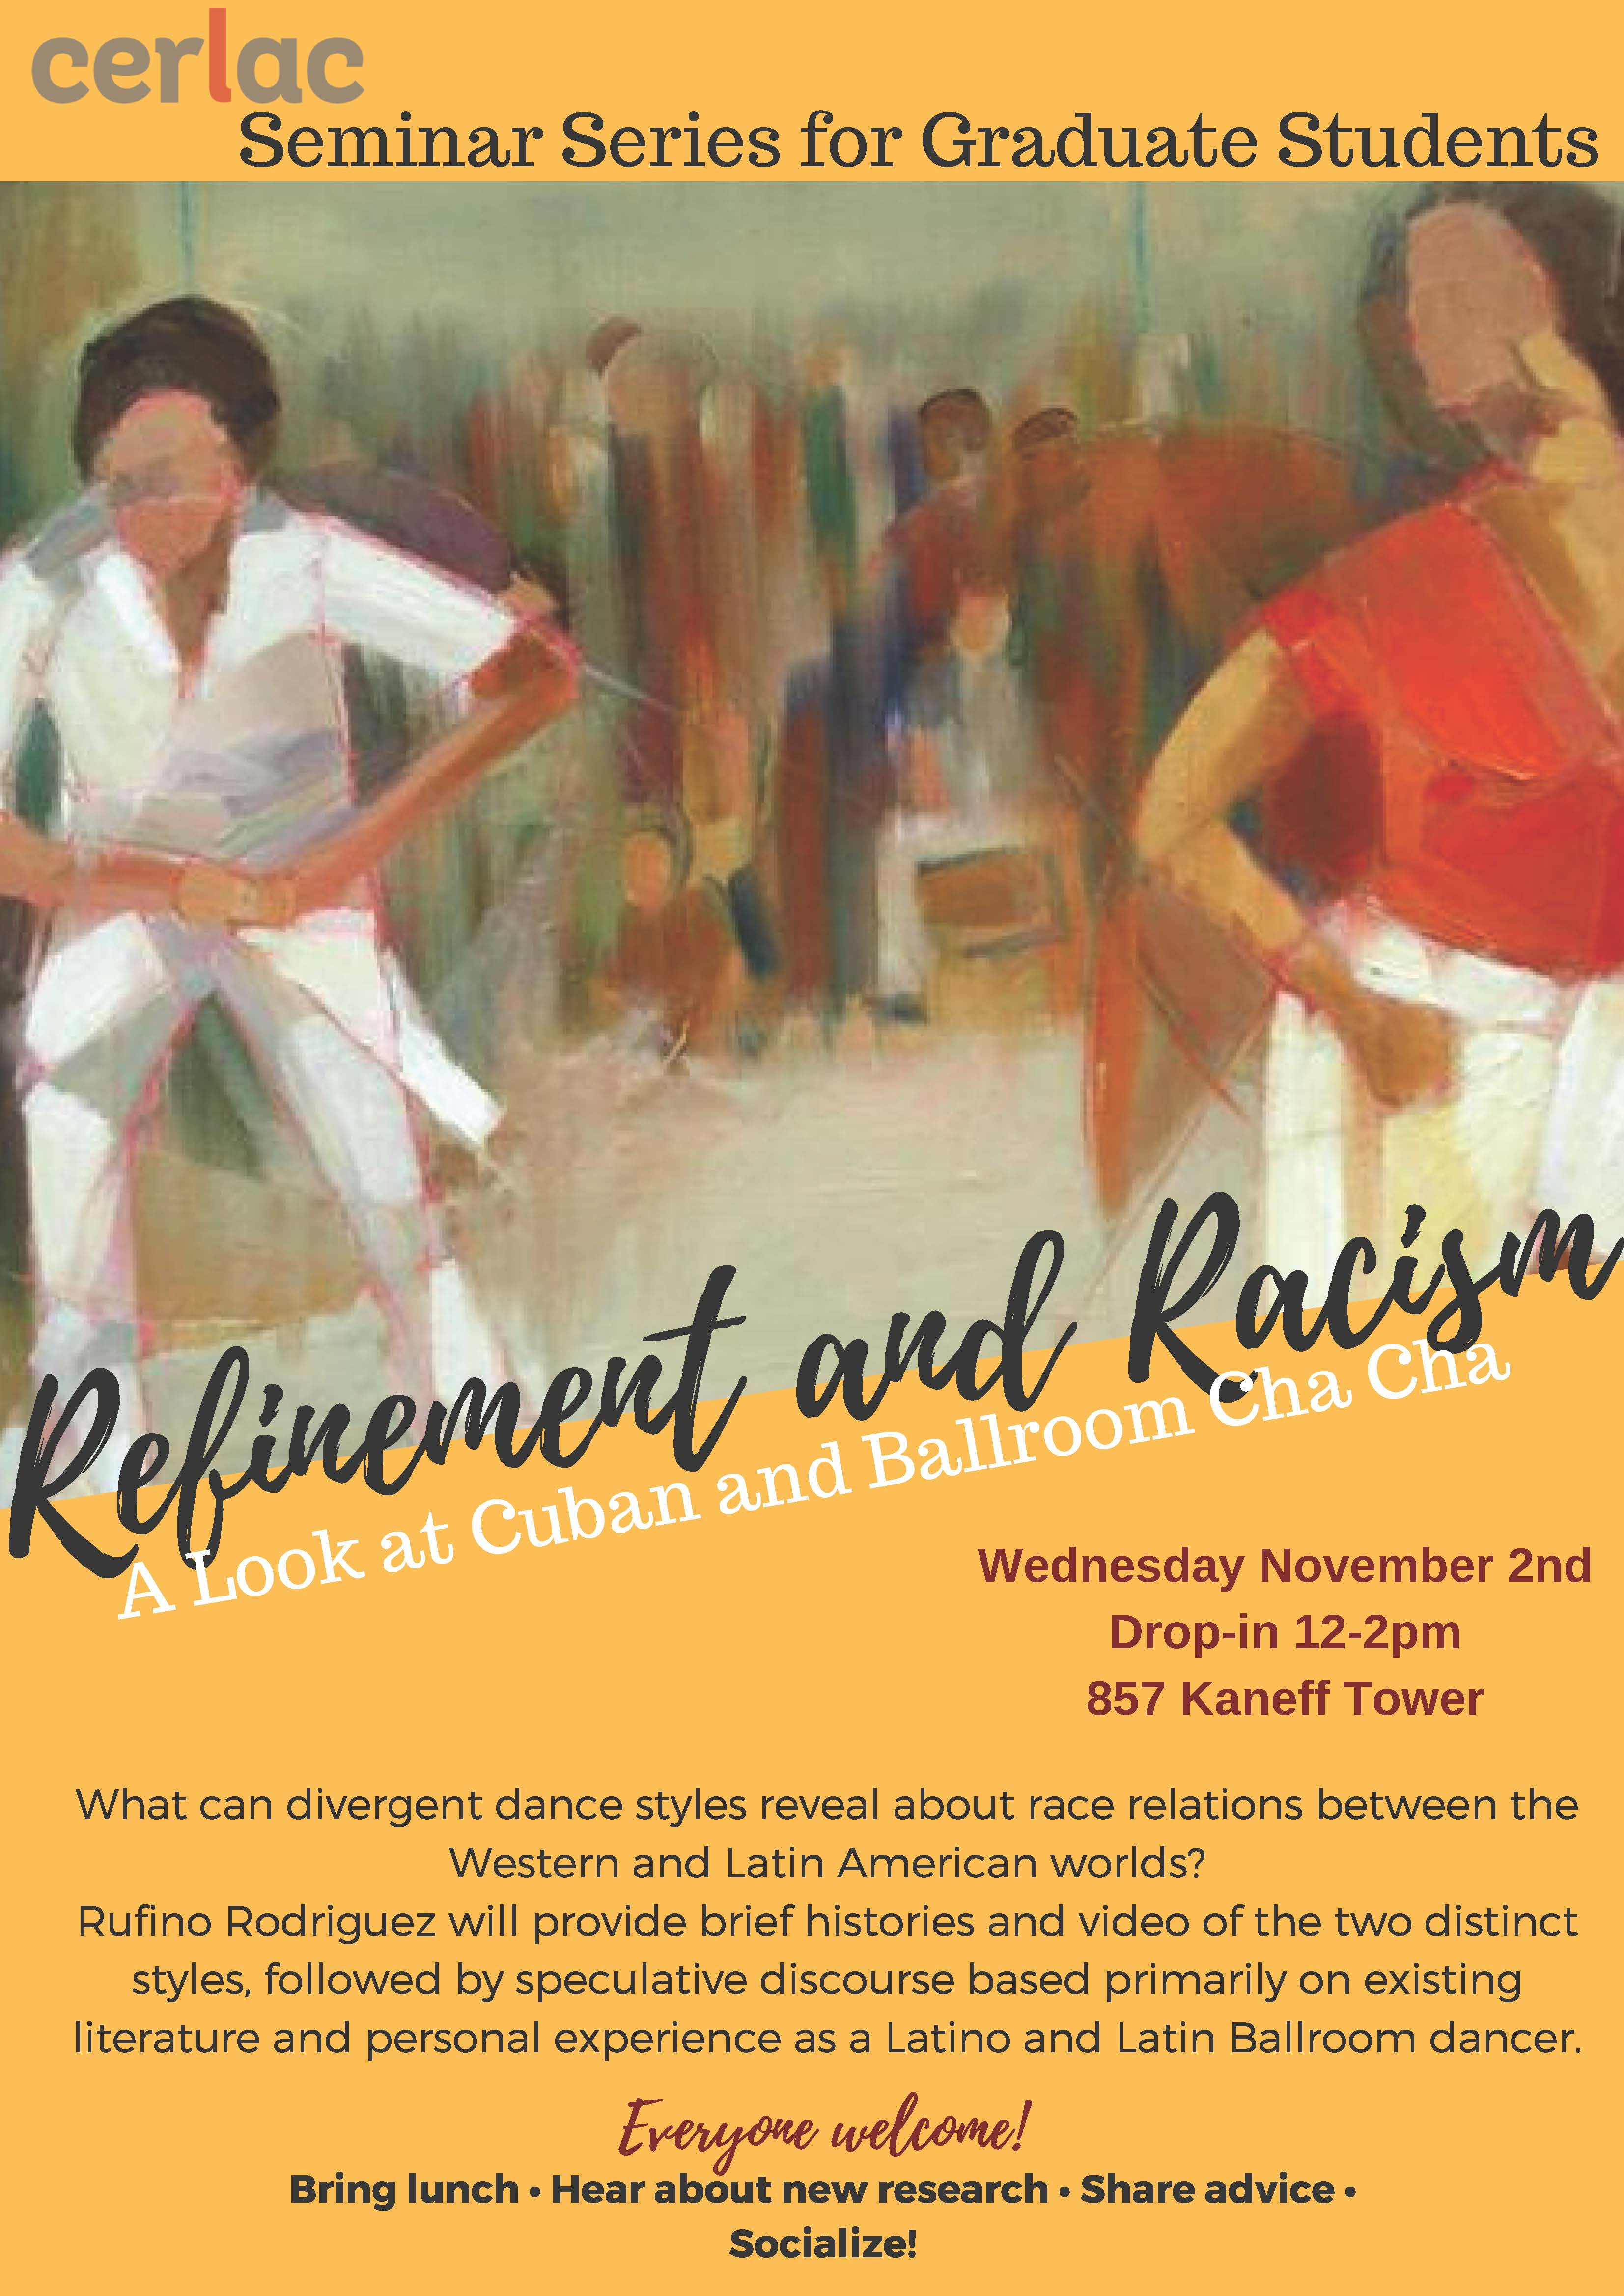 Seminar Series for Graduate Students. Refinement and Racism. A Look at Cuban and Ballroom Cha Cha @ Kaneff Tower 857 | Toronto | Ontario | Canada